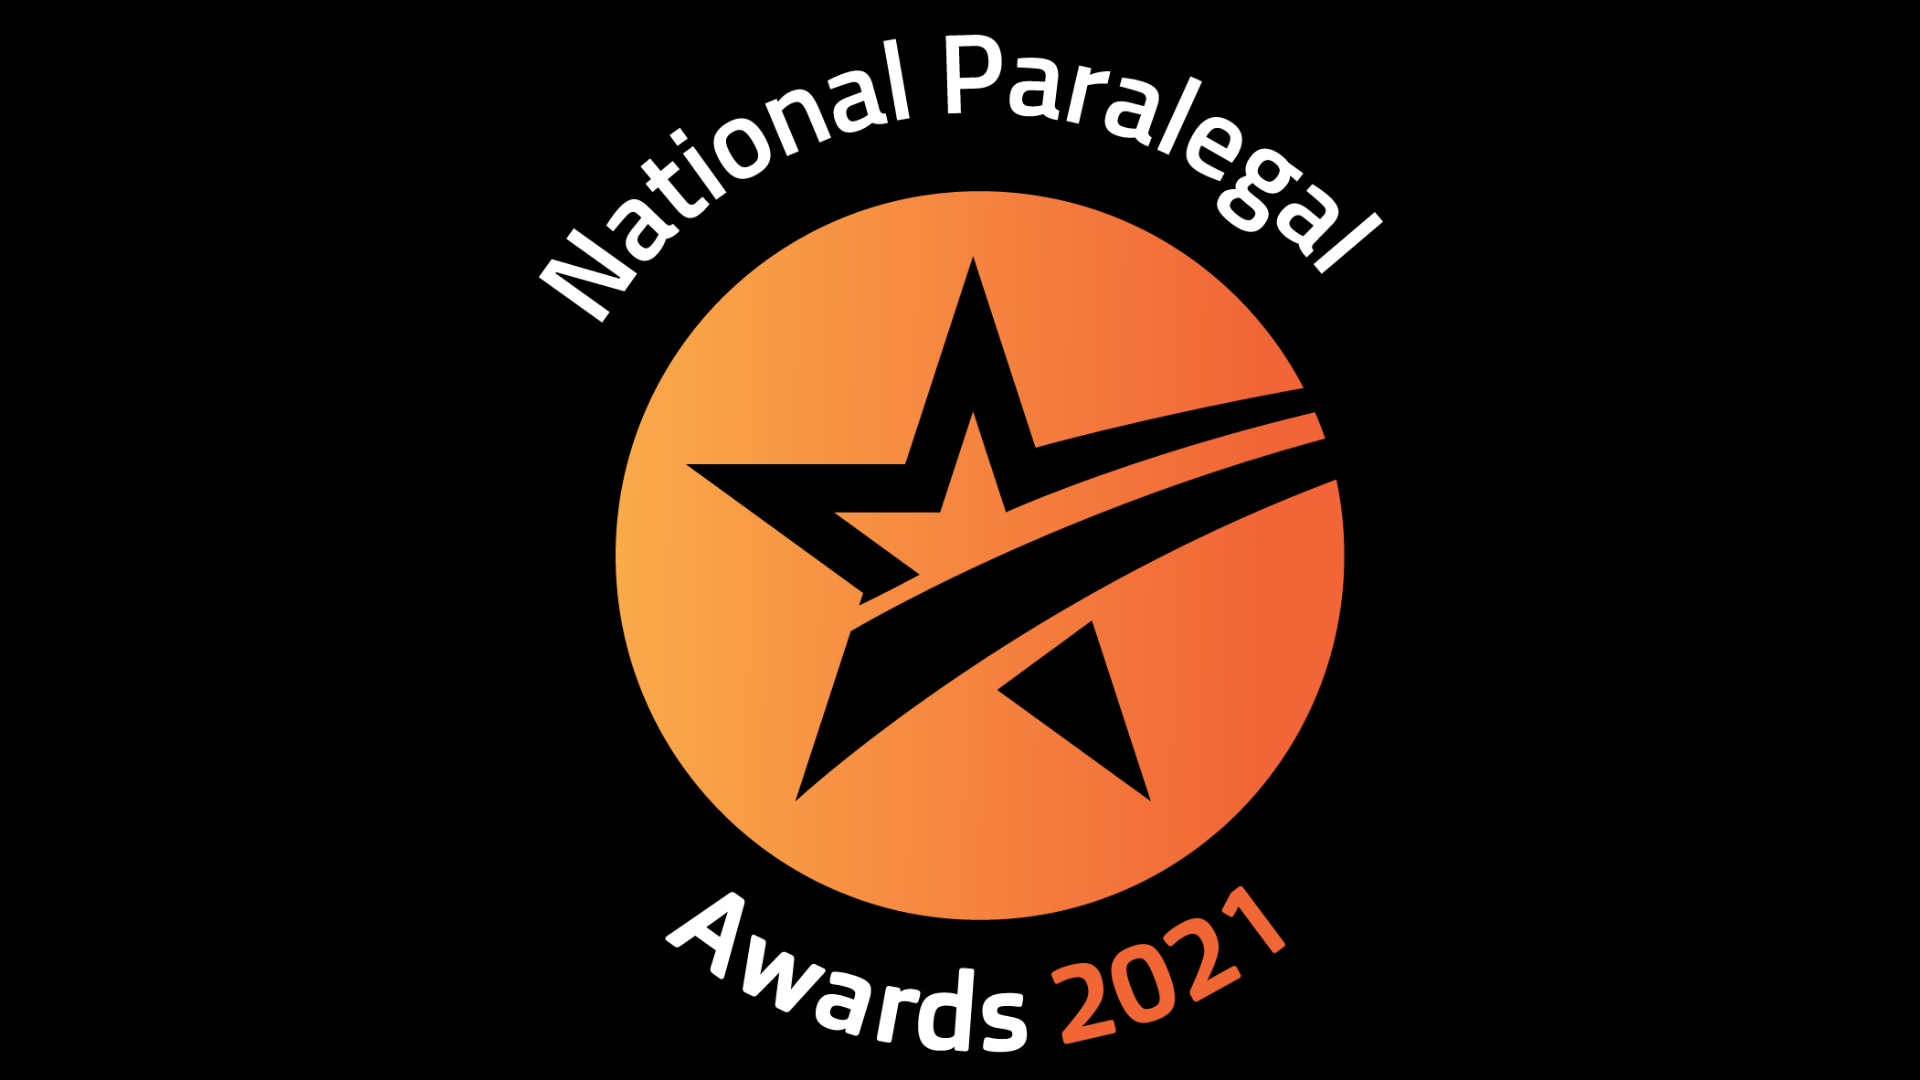 X-Press is proud to be sponsoring the National Paralegal Awards 2021